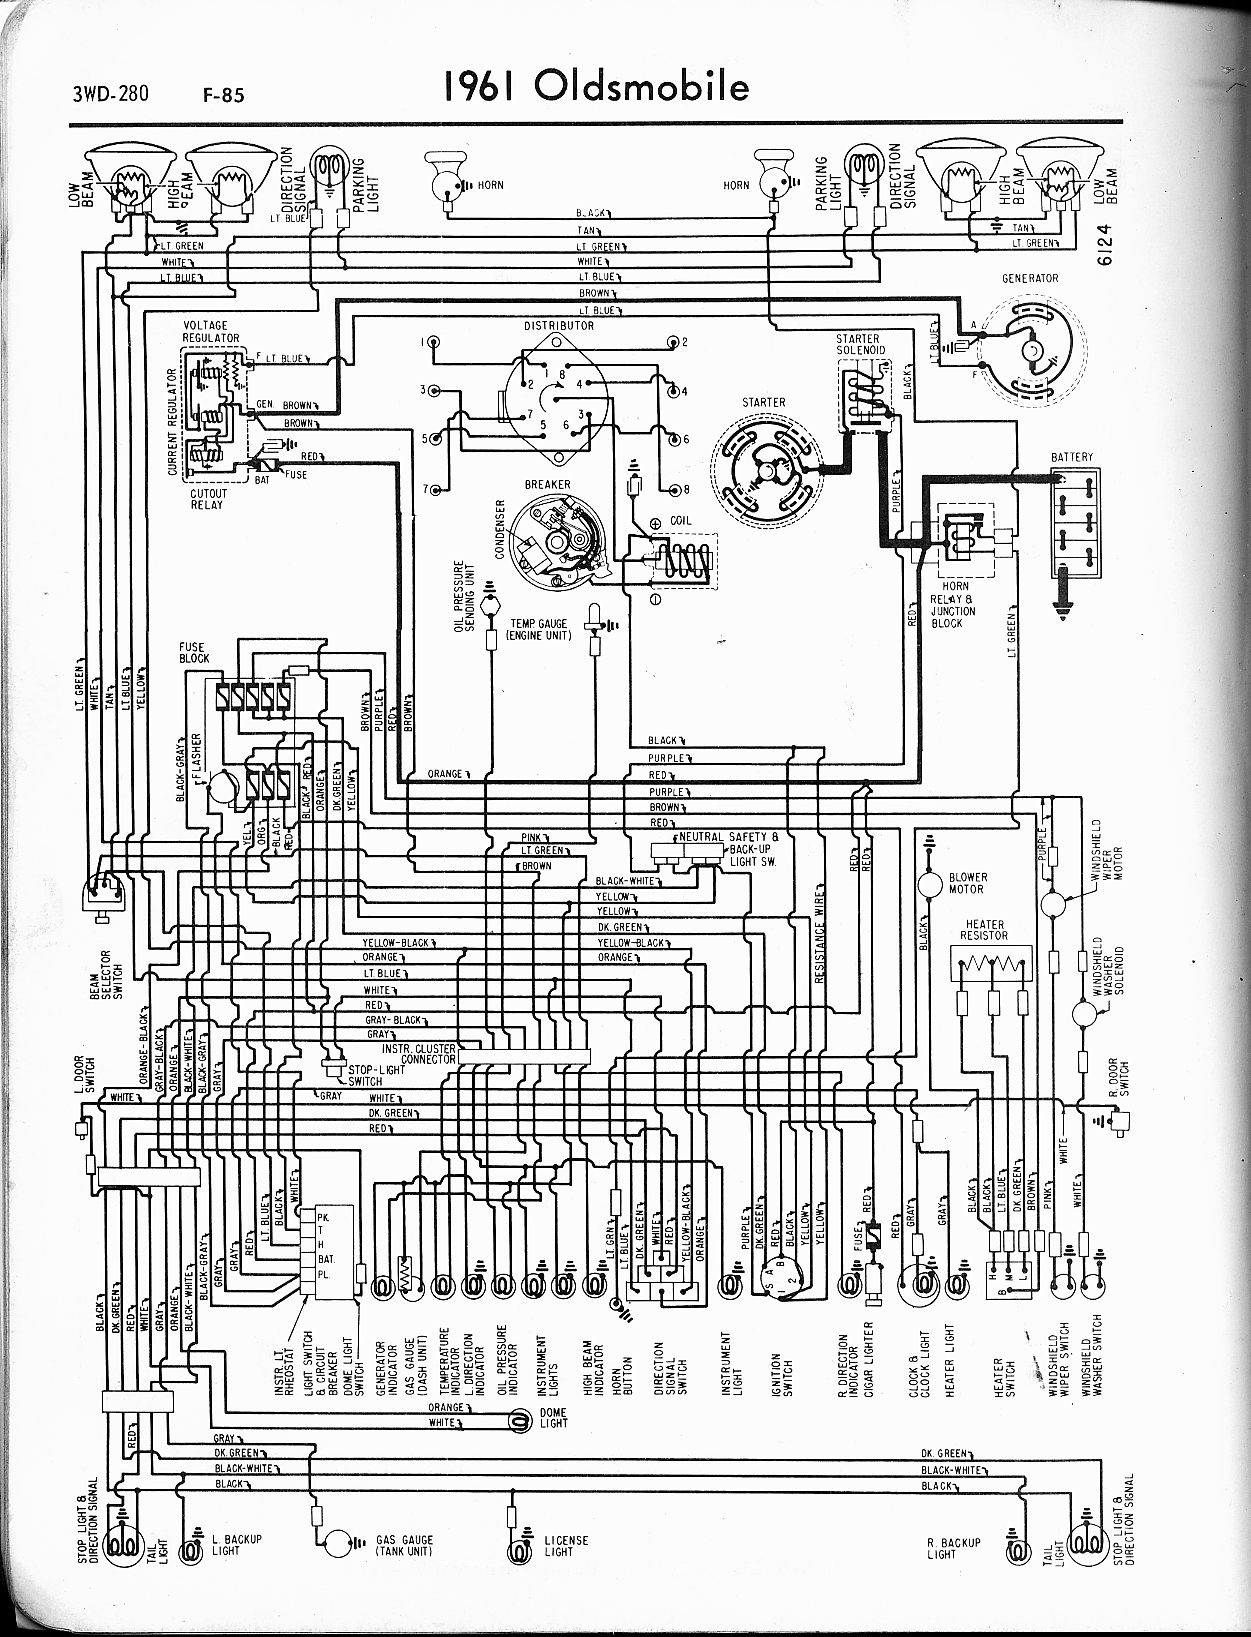 Wiring Diagrams For 1984 Oldsmobile Cutlass Dodge Diagram Supreme Pictures Chevy Blazer 1993 Ciera